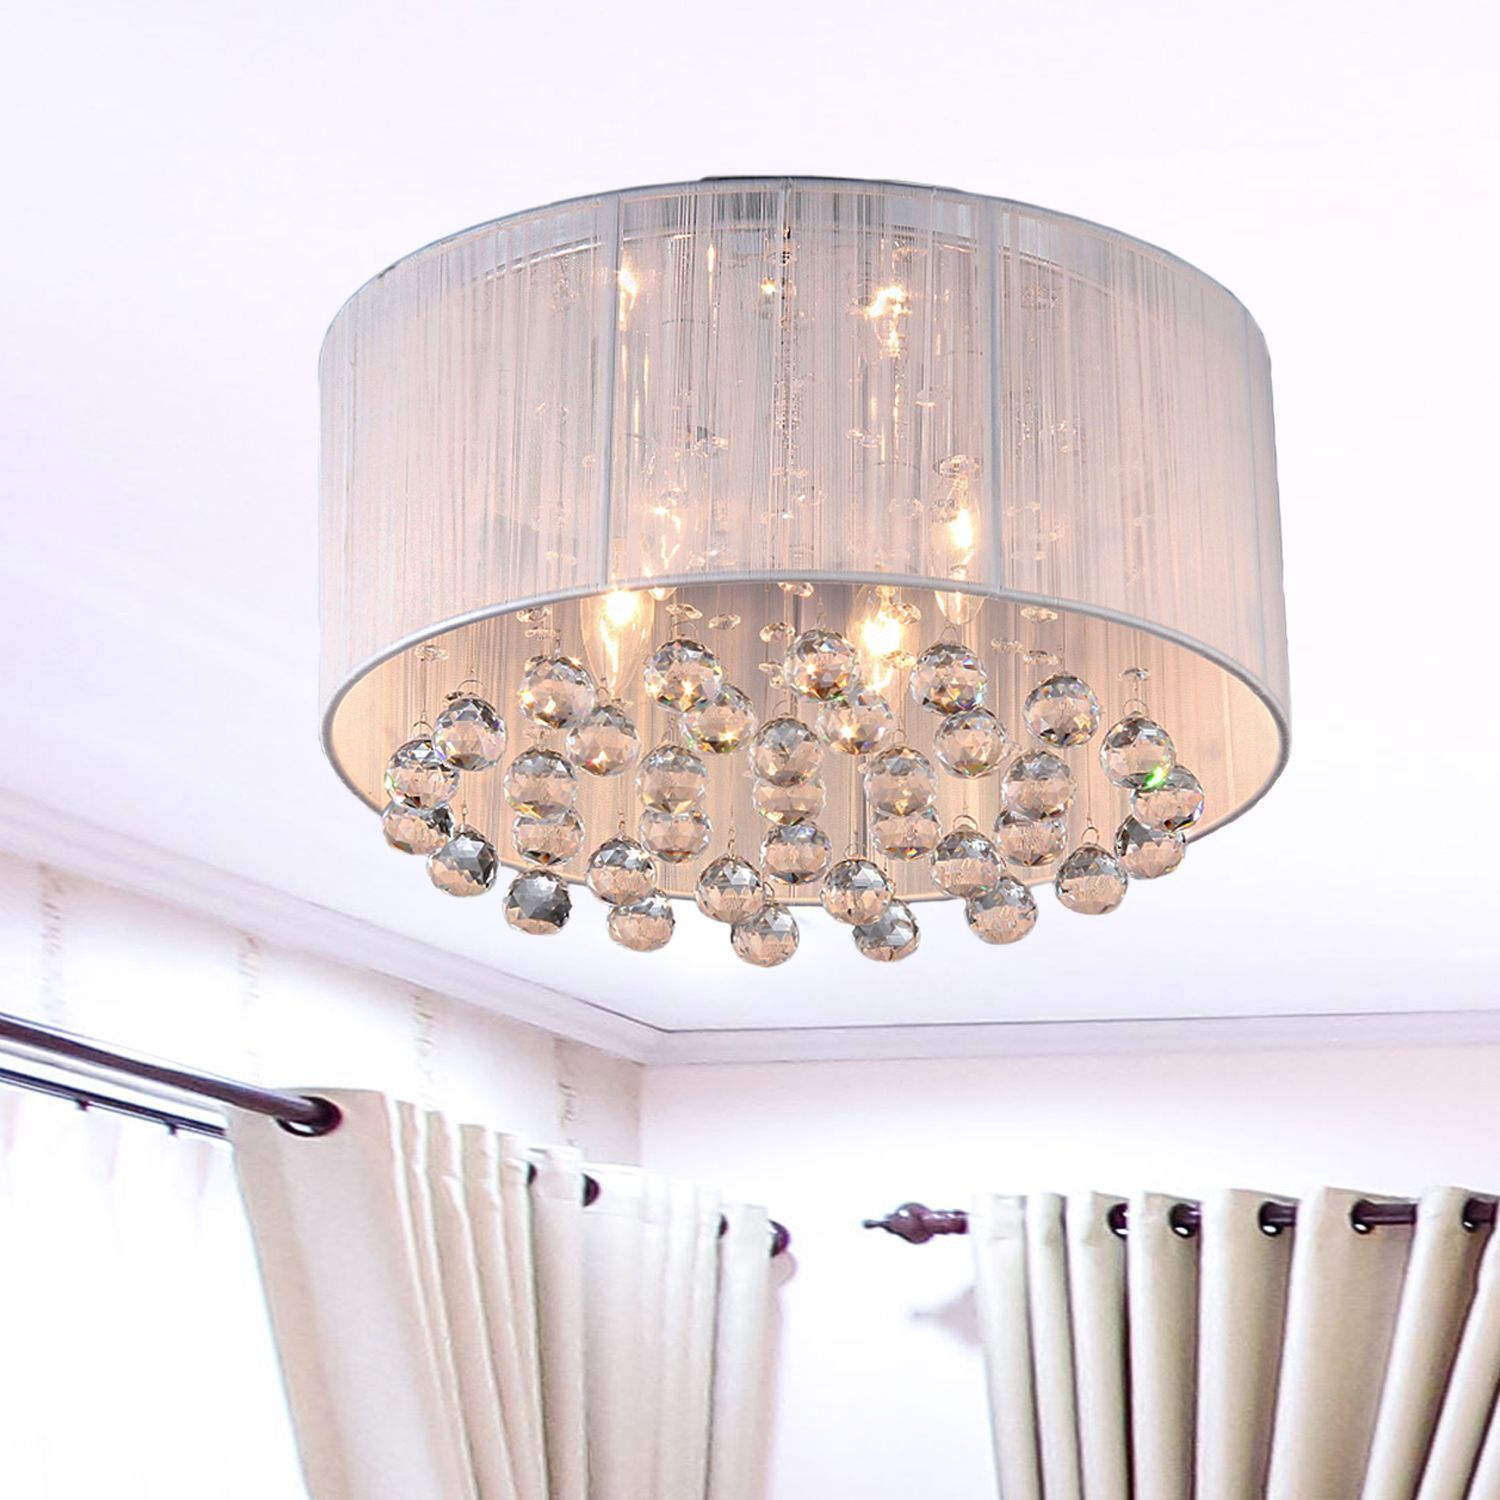 Warehouse Of Tiffany Optimus White Fabric 17-Inch 4-Light for Aurore 4-Light Crystal Chandeliers (Image 30 of 30)